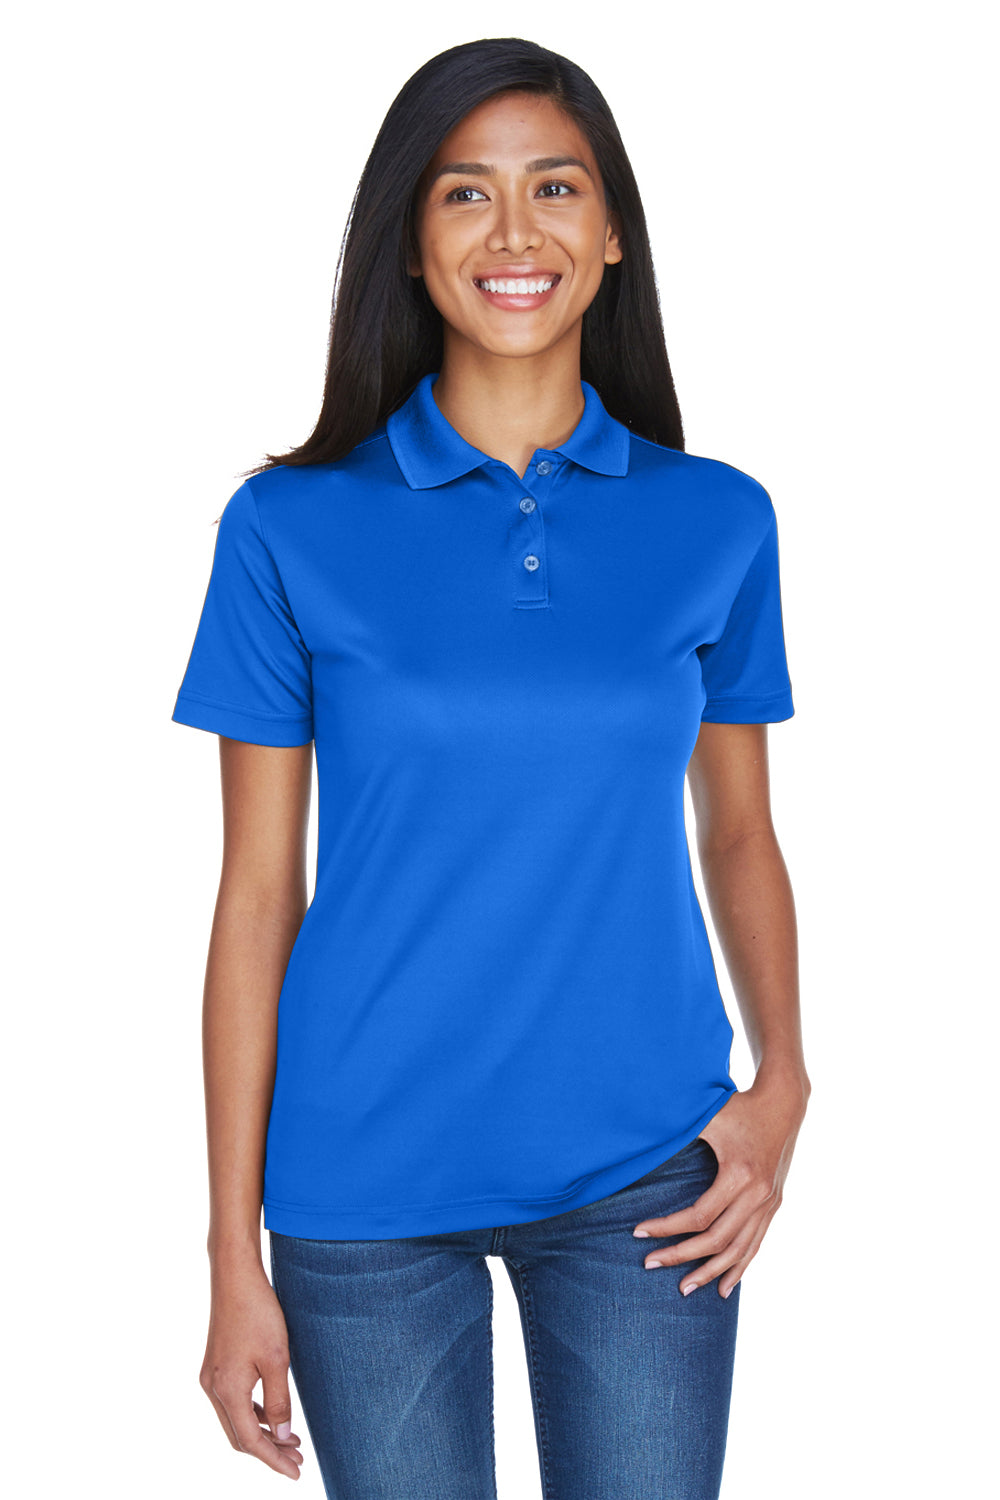 UltraClub 8404 Womens Cool & Dry Moisture Wicking Short Sleeve Polo Shirt Royal Blue Front